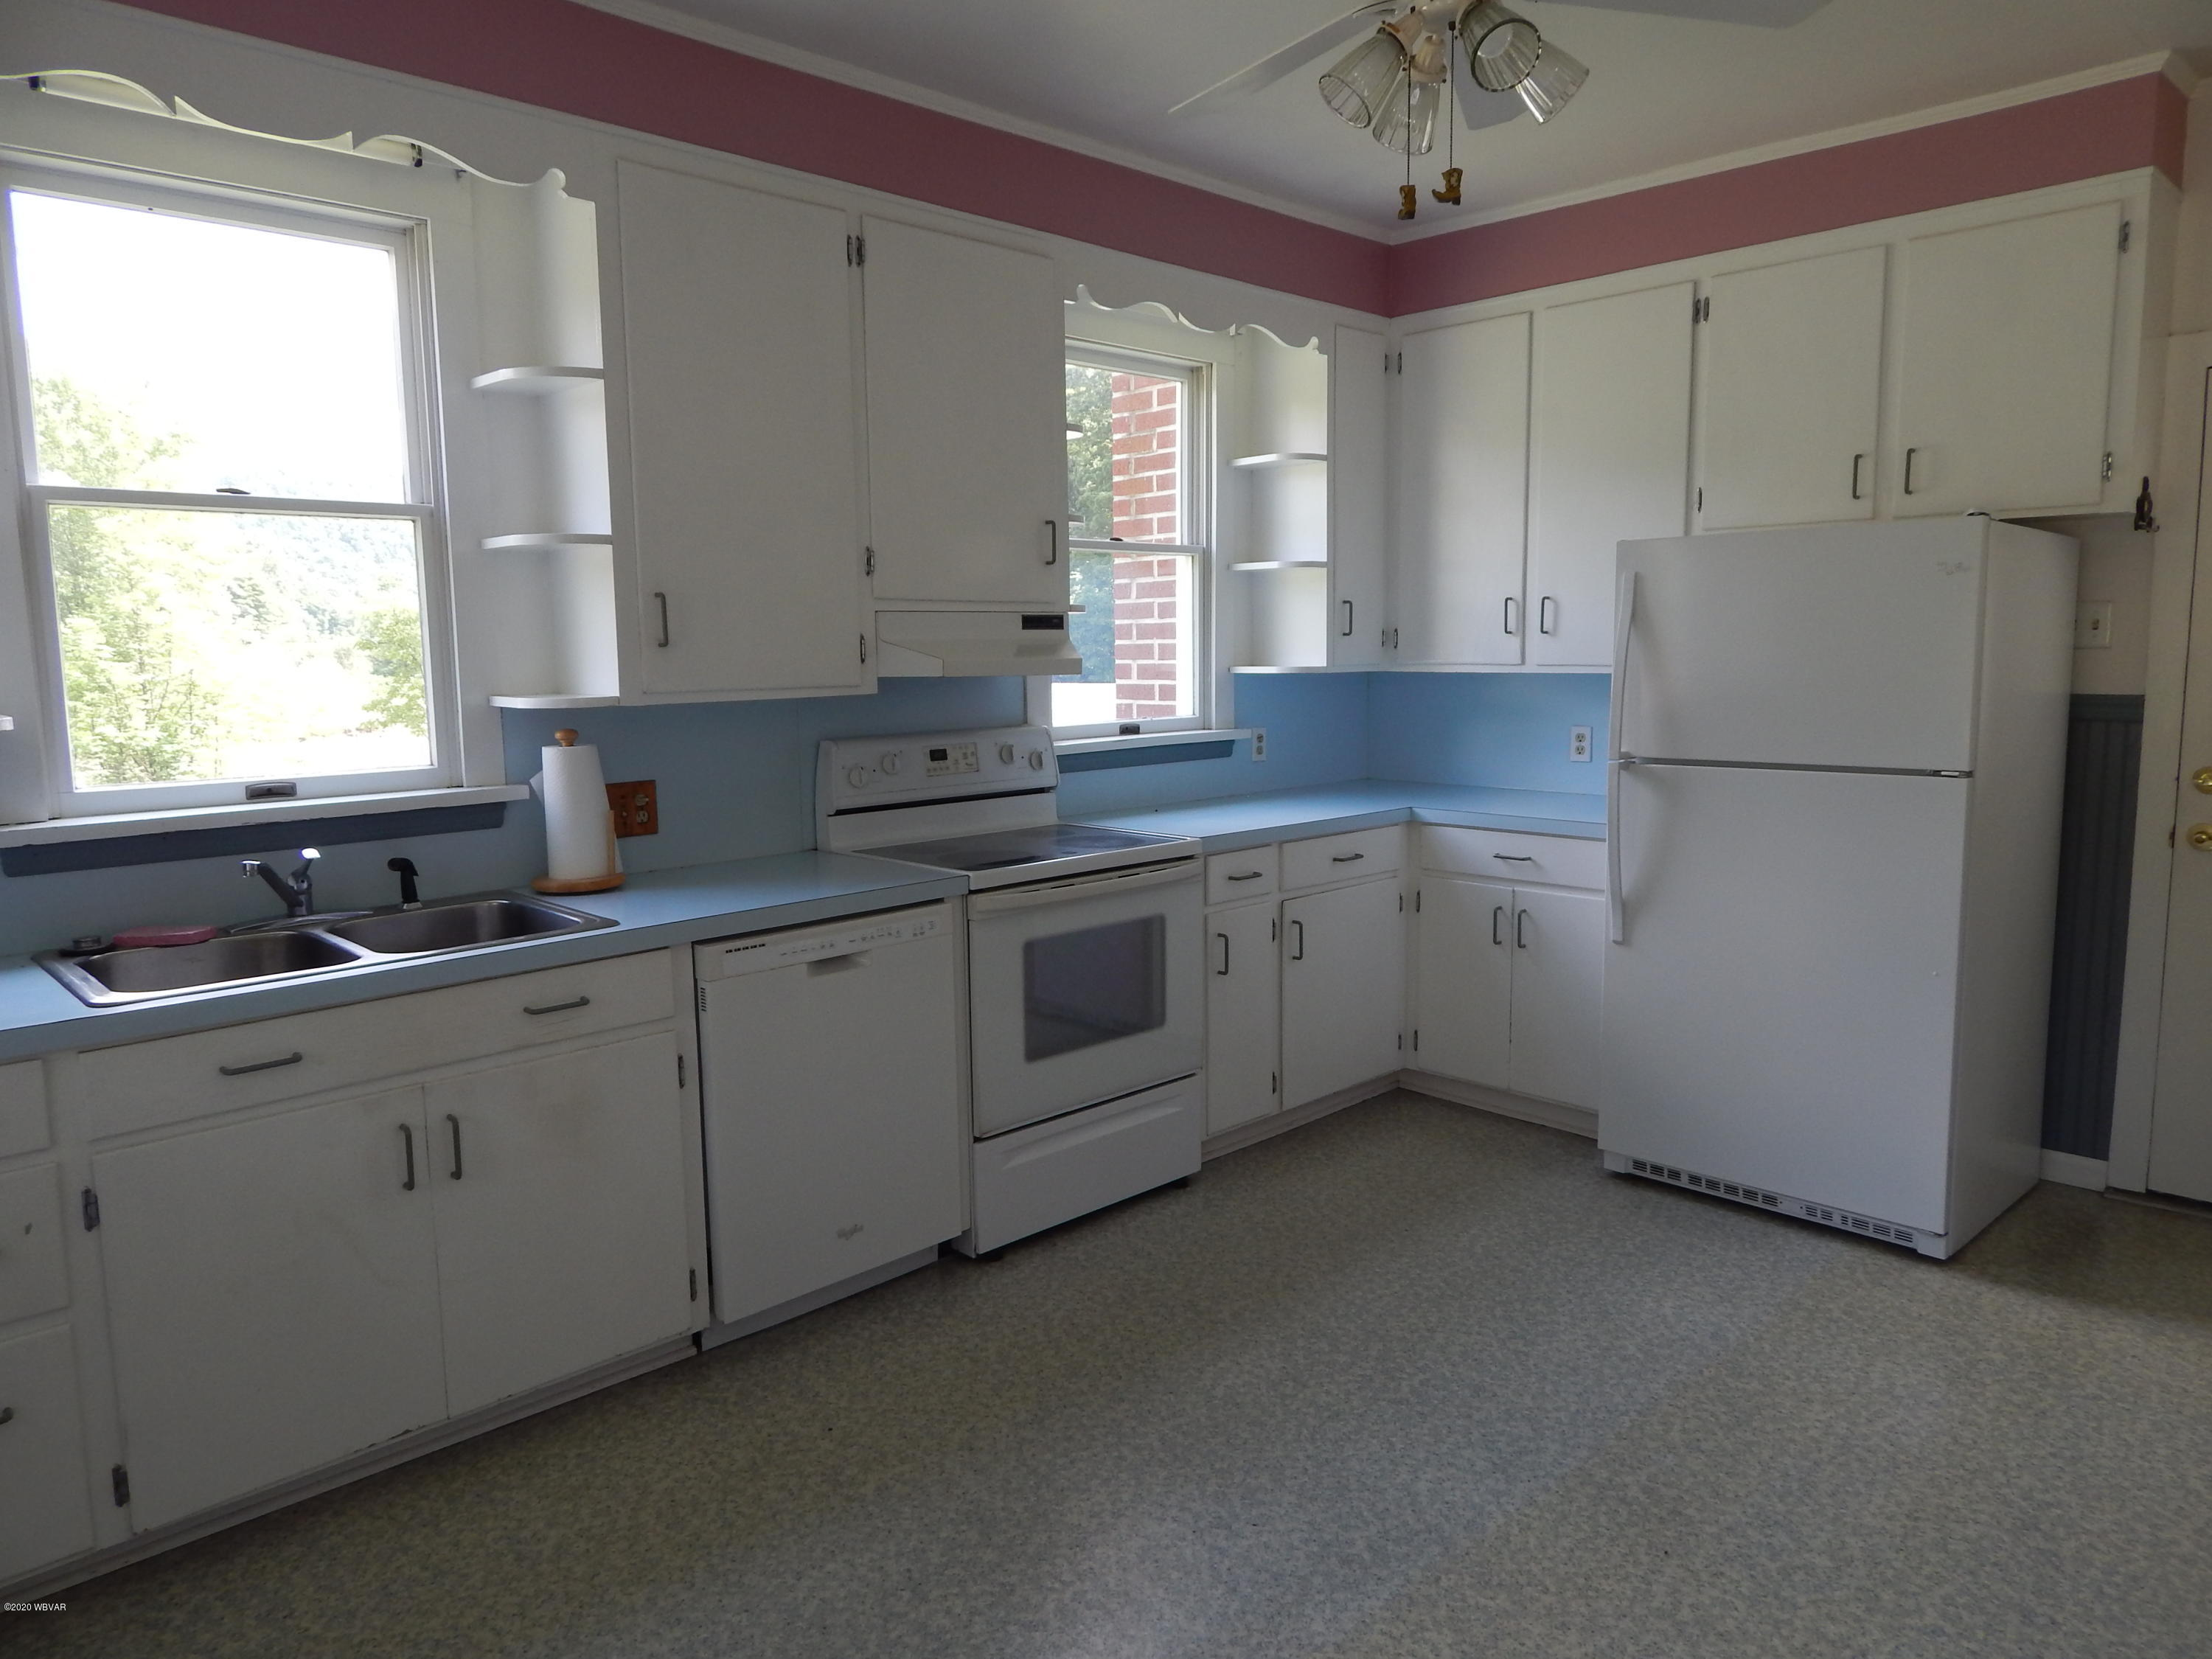 3739 QUENSHUKENY ROAD, Jersey Shore, PA 17740, 4 Bedrooms Bedrooms, ,2 BathroomsBathrooms,Residential,For sale,QUENSHUKENY,WB-91546